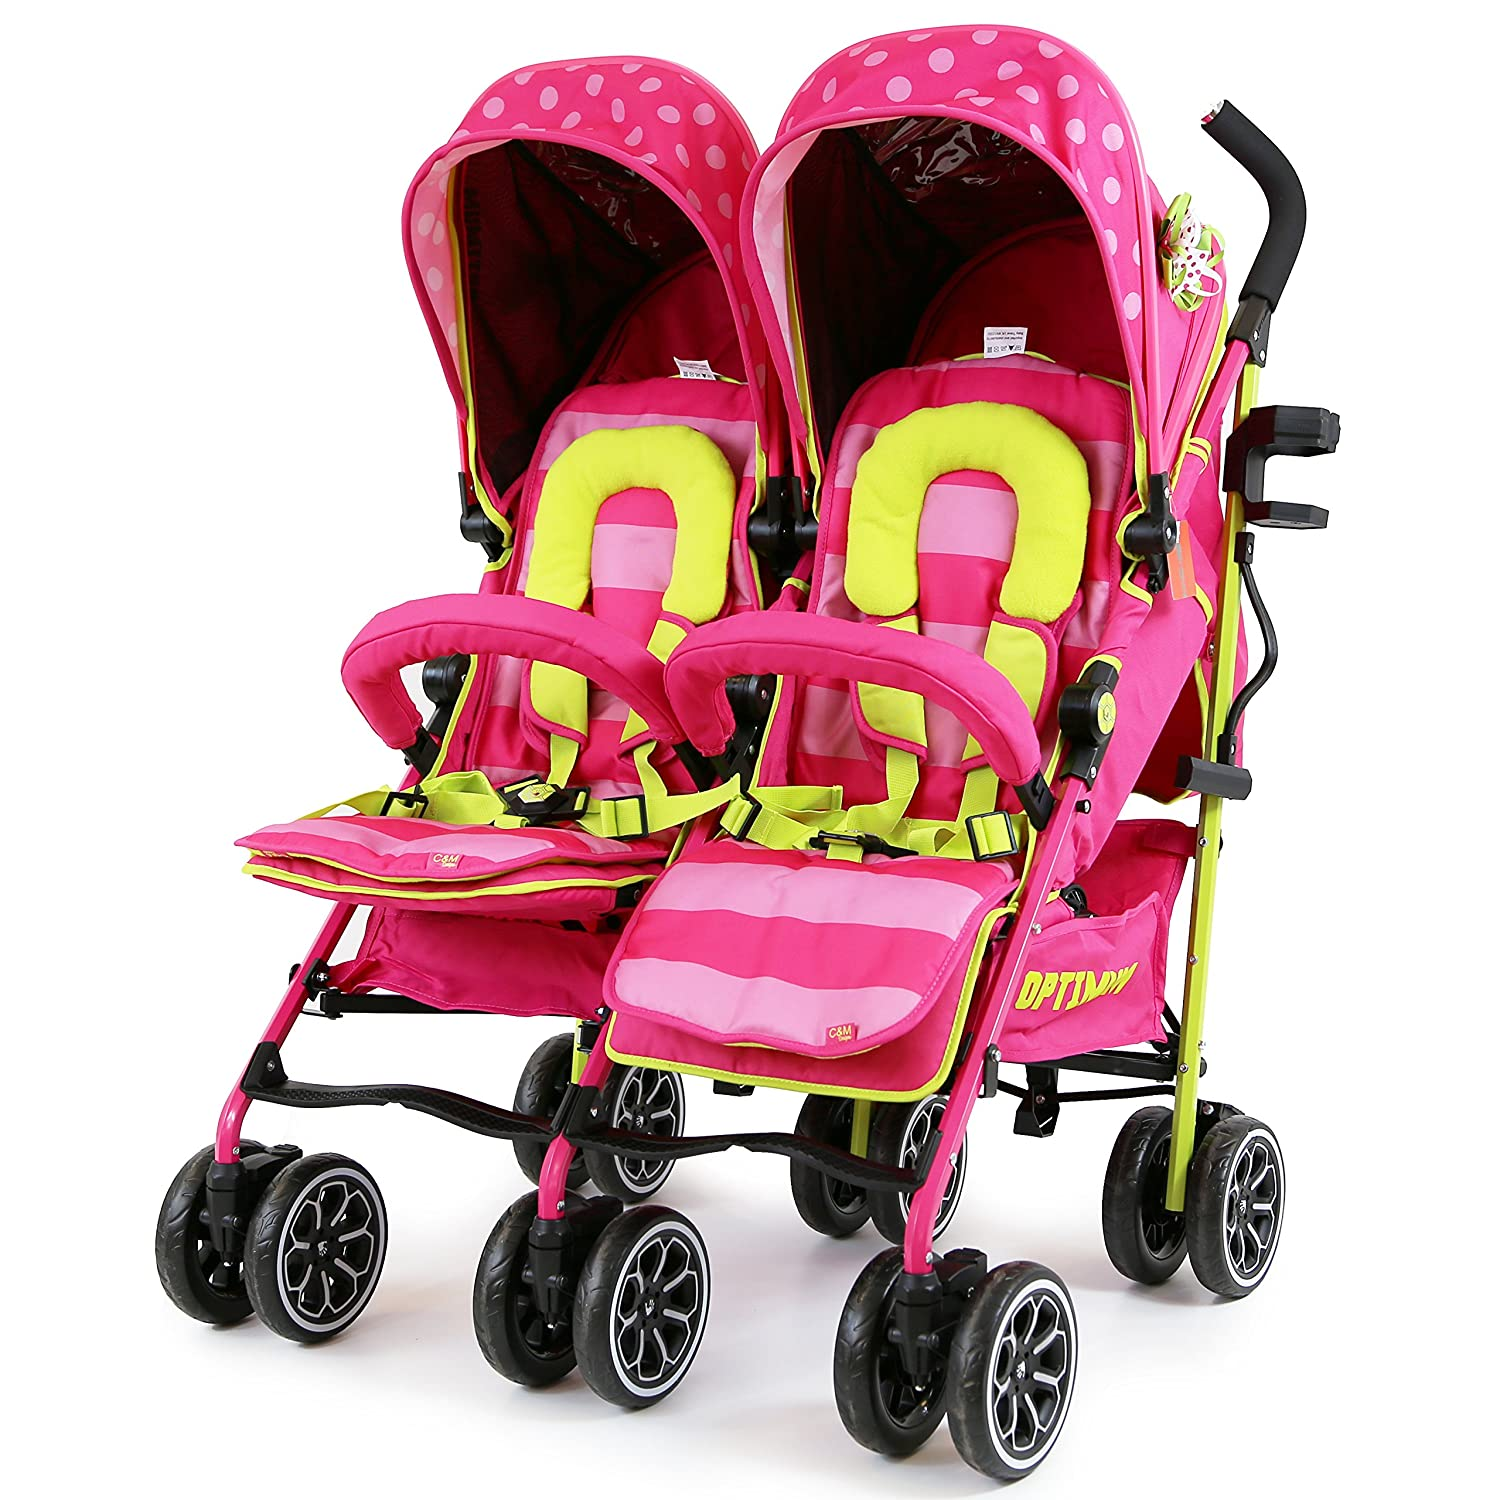 iSafe TWIN OPTIMUM Stroller